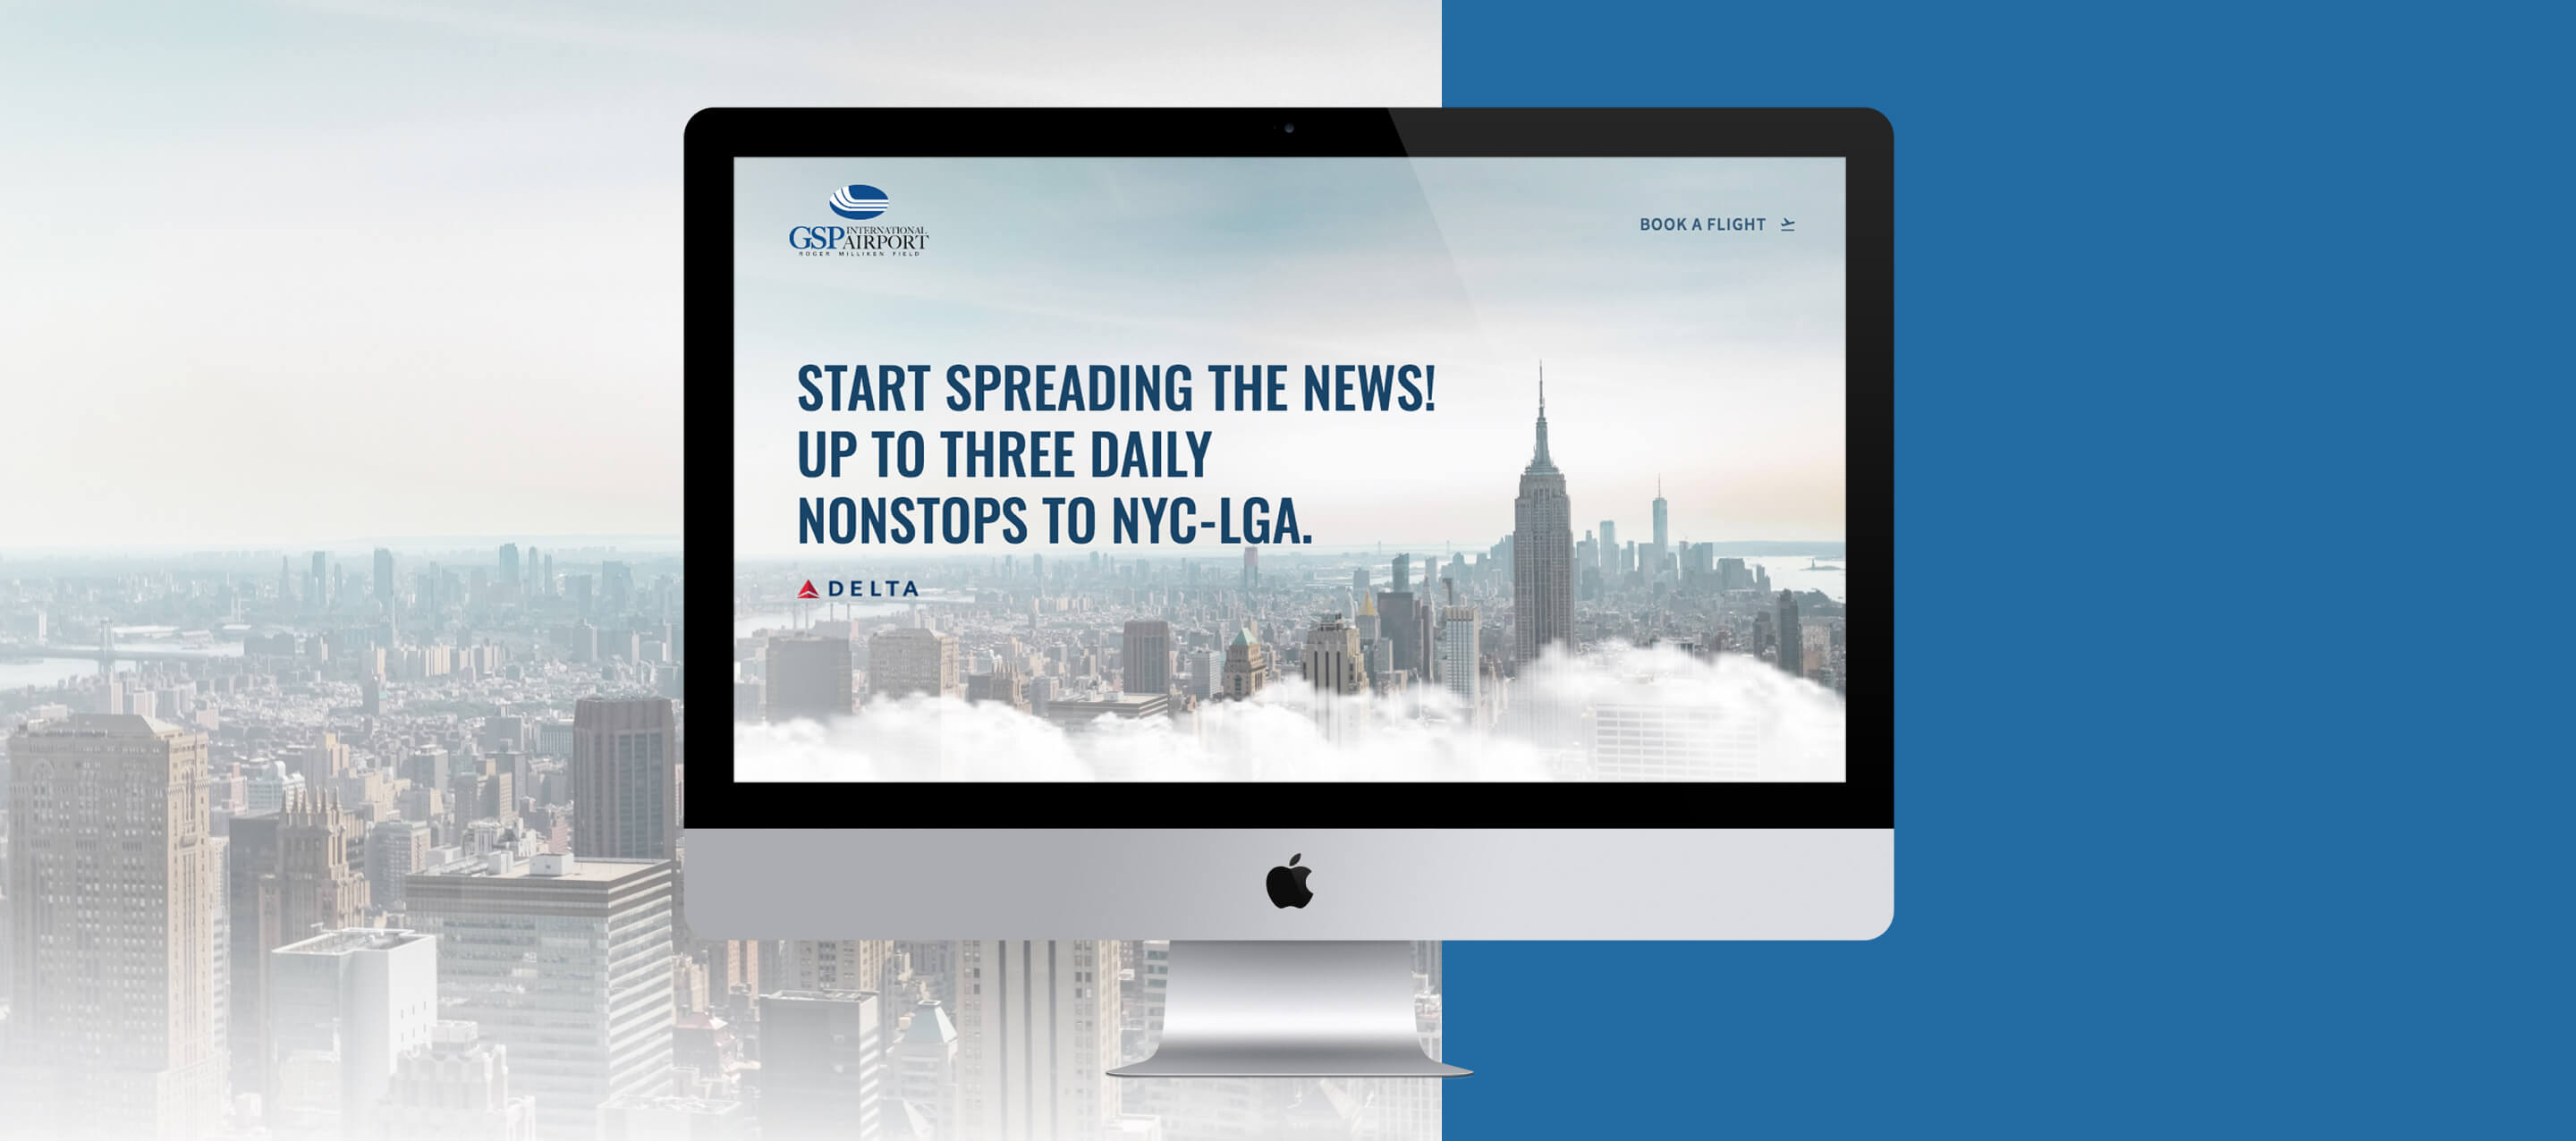 gsp-nyc-imac-landing-page-cityscape